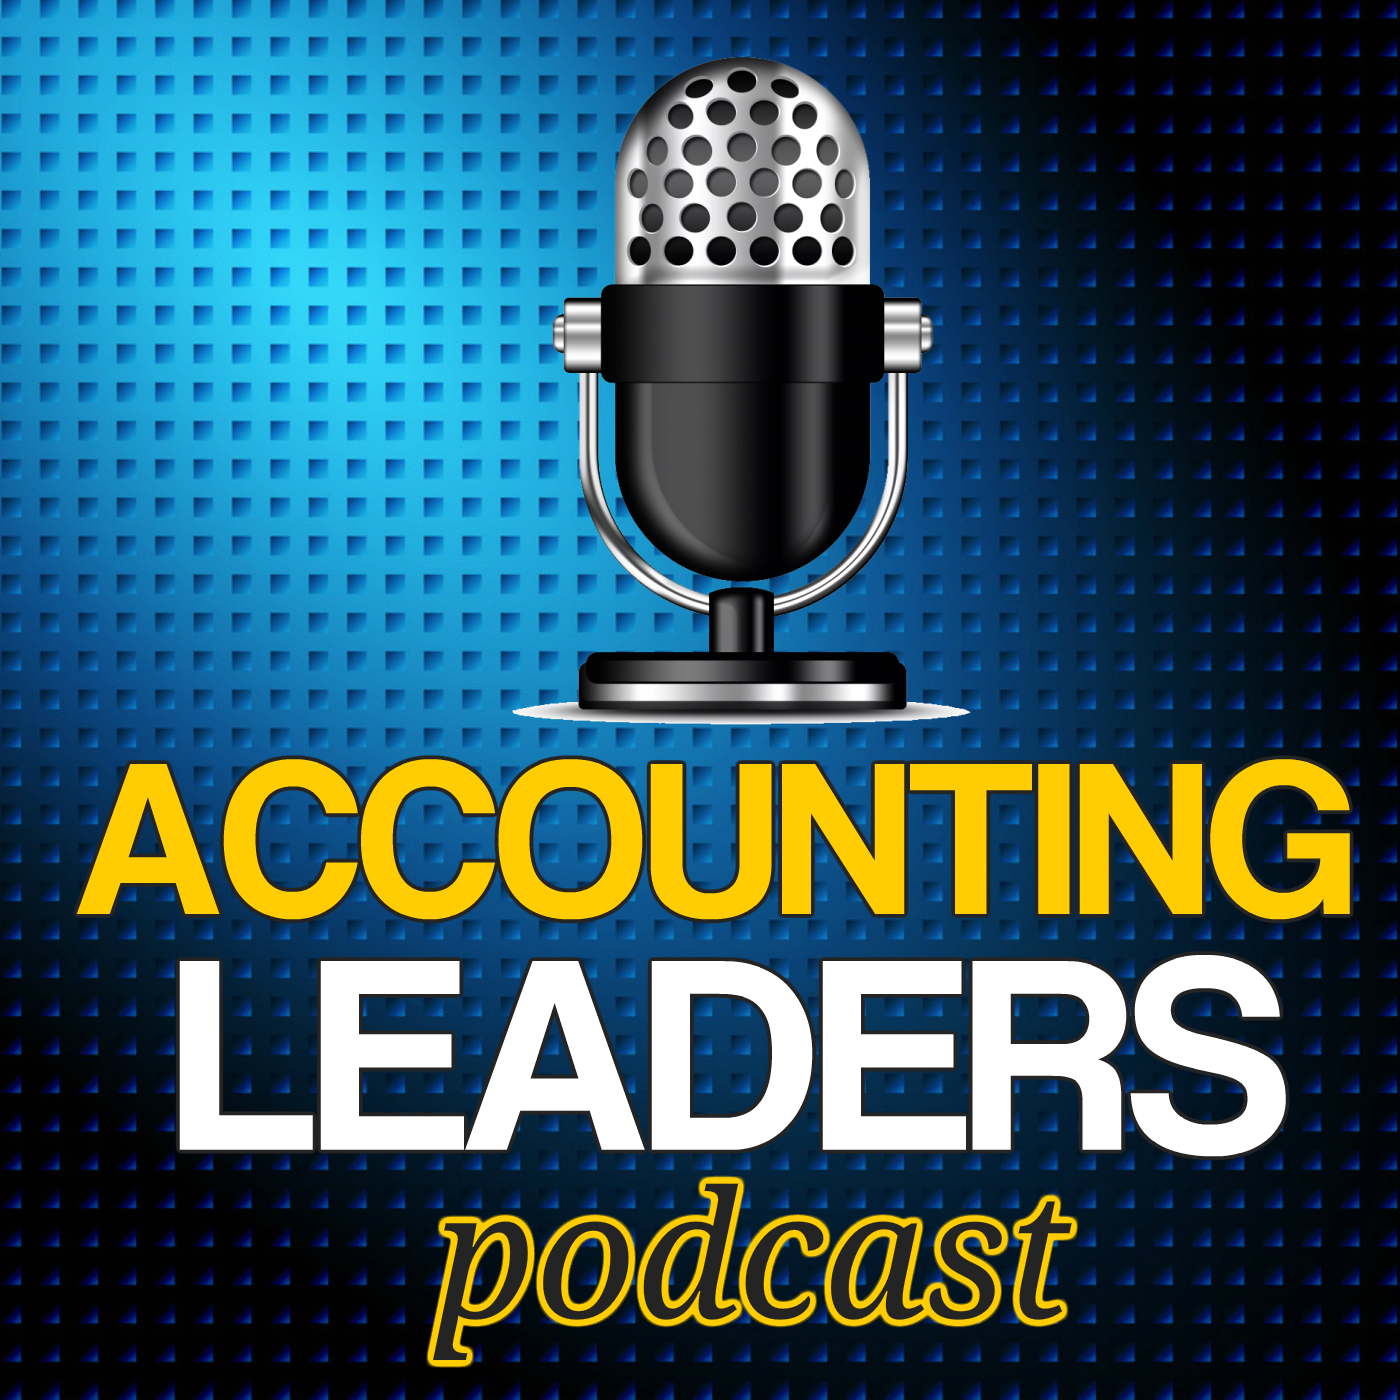 Accounting Leaders podcast with founder of the Business Development Academy Rob Brown